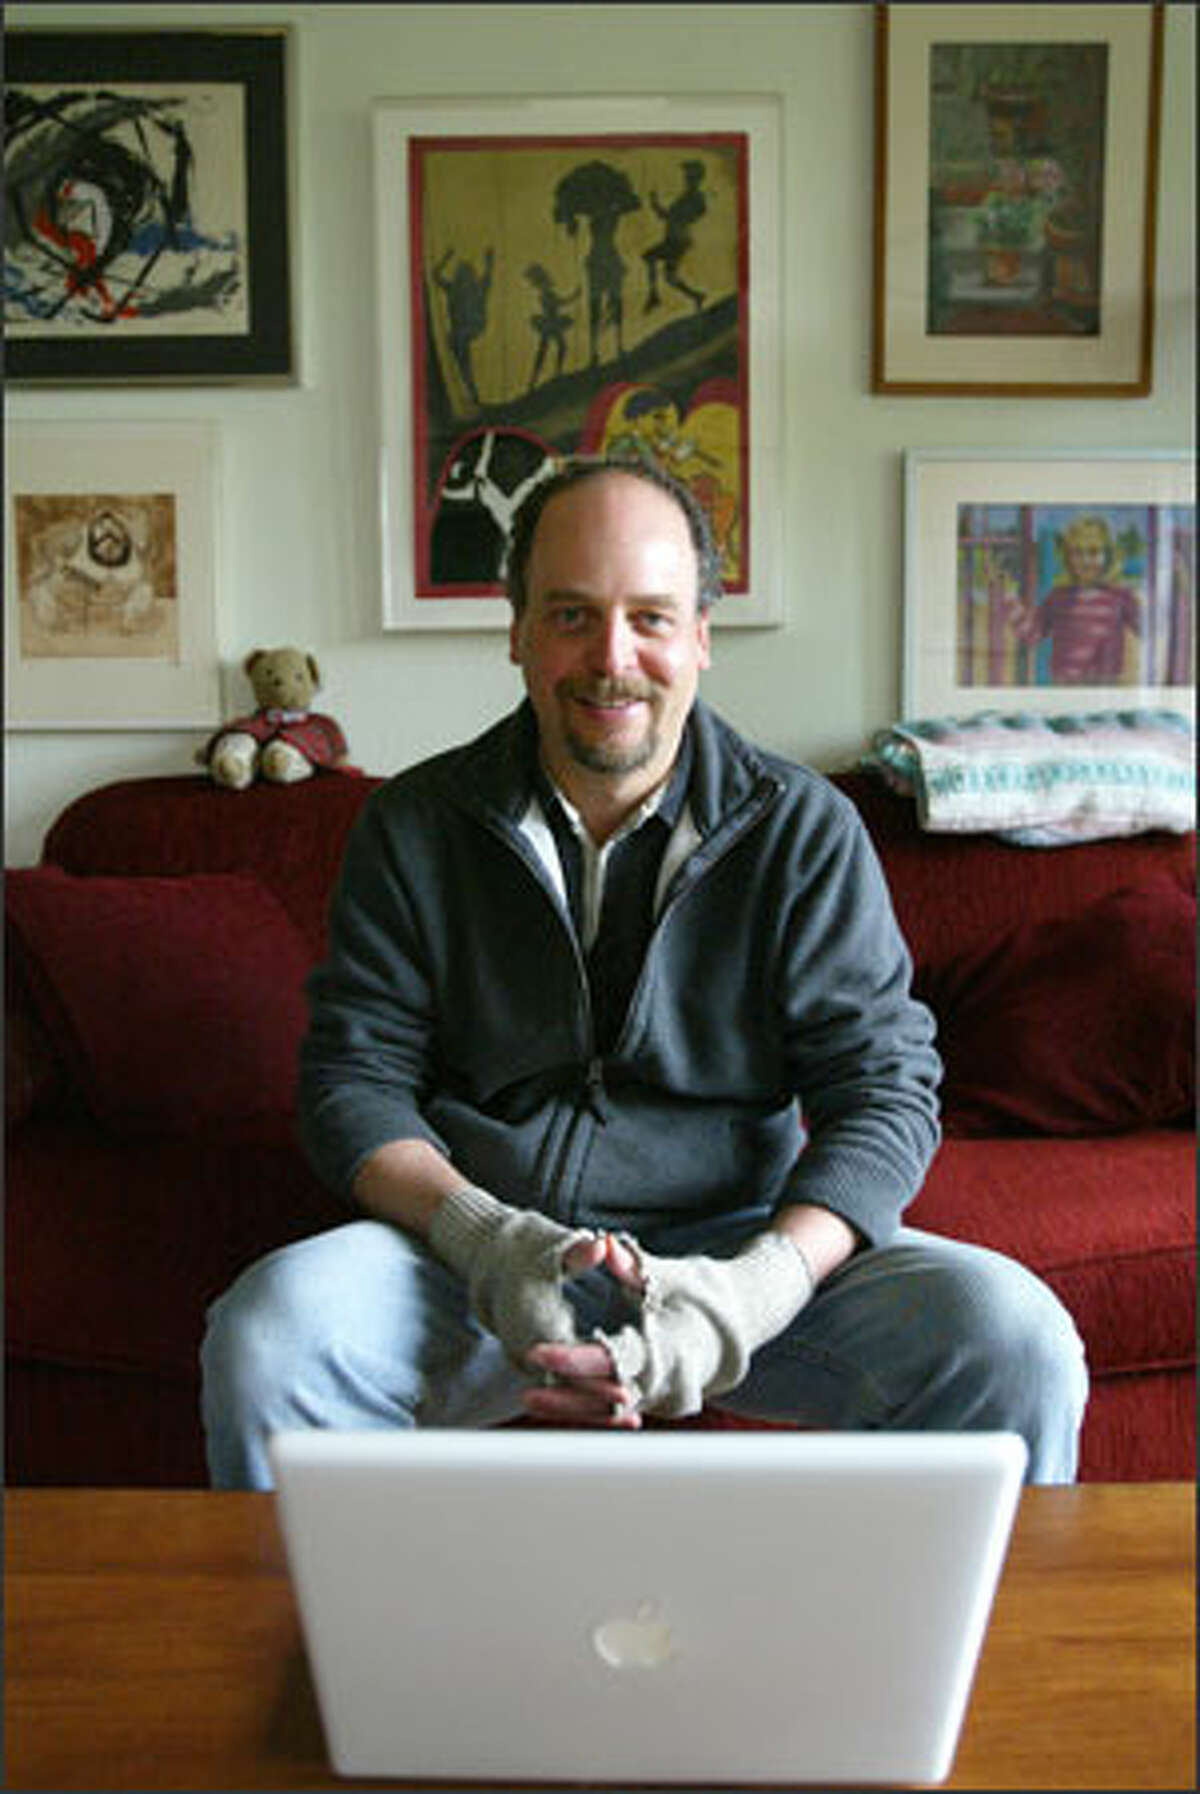 David Goldstein runs the liberal horsesass.org from his home in Seward Park. Goldstein started the blog as part of his satirical initiative campaign against tax-cutting guru Tim Eyman.